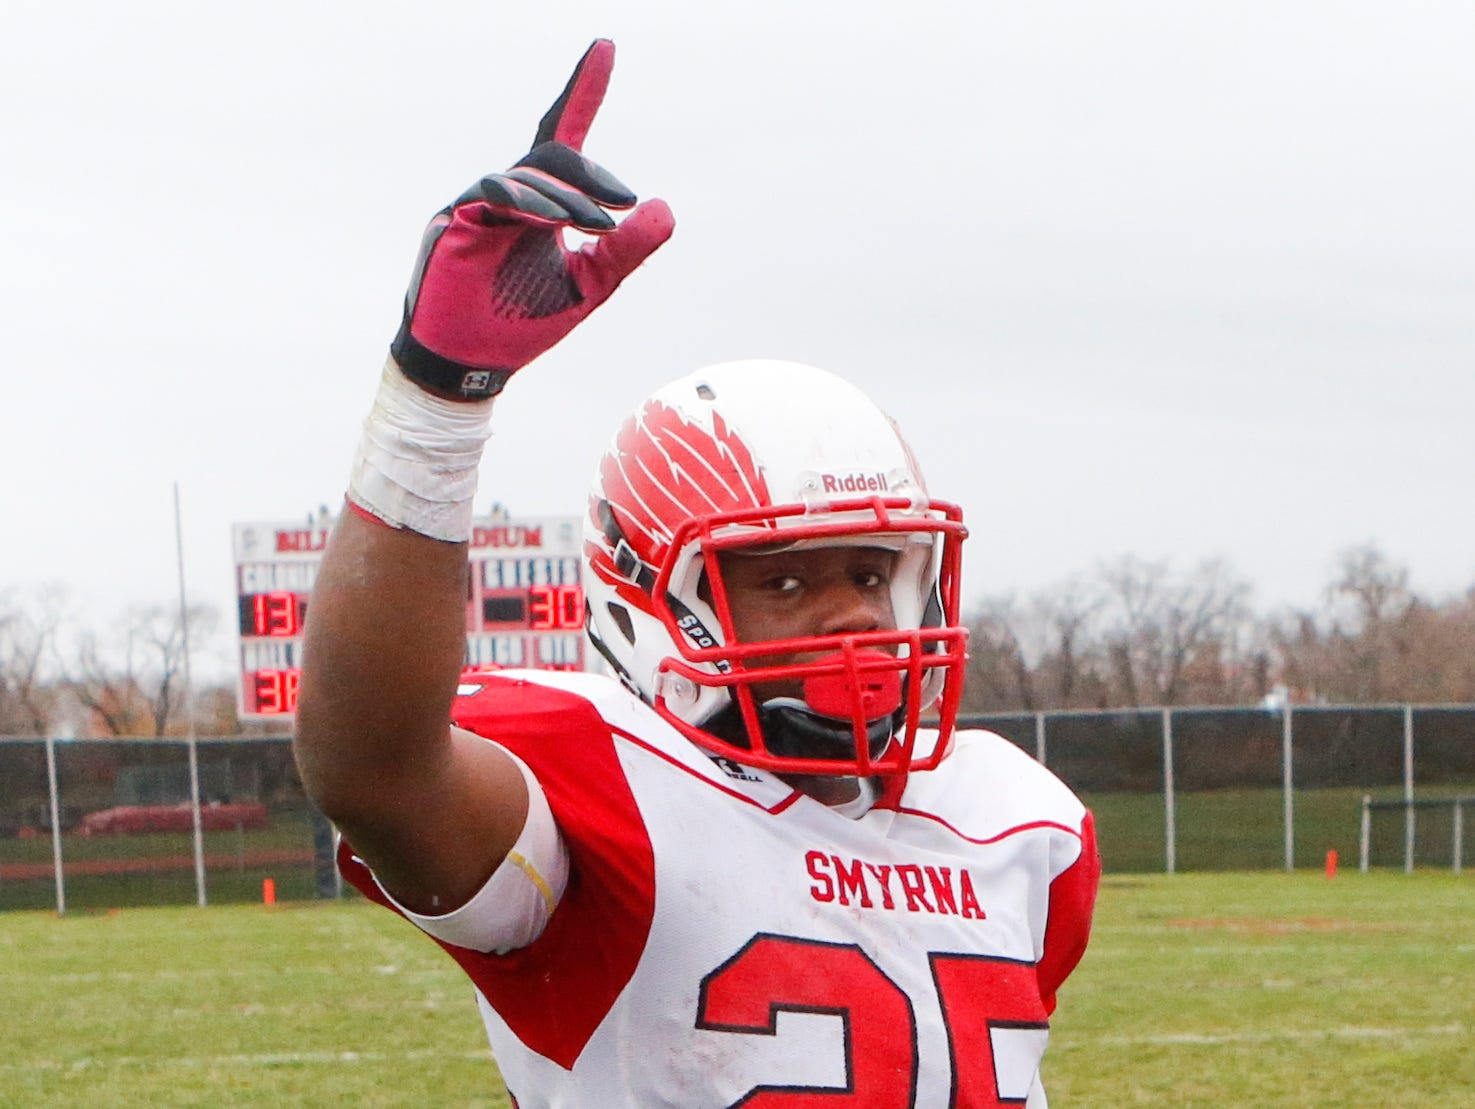 Smyrna's Will Knight celebrates after his Eagles' 30-13 win against William Penn in a semifinal of the DIAA Division I state tournament at Bill Cole Stadium Saturday. Knight finished with 270 yards on 32 carries and 4 TDs.